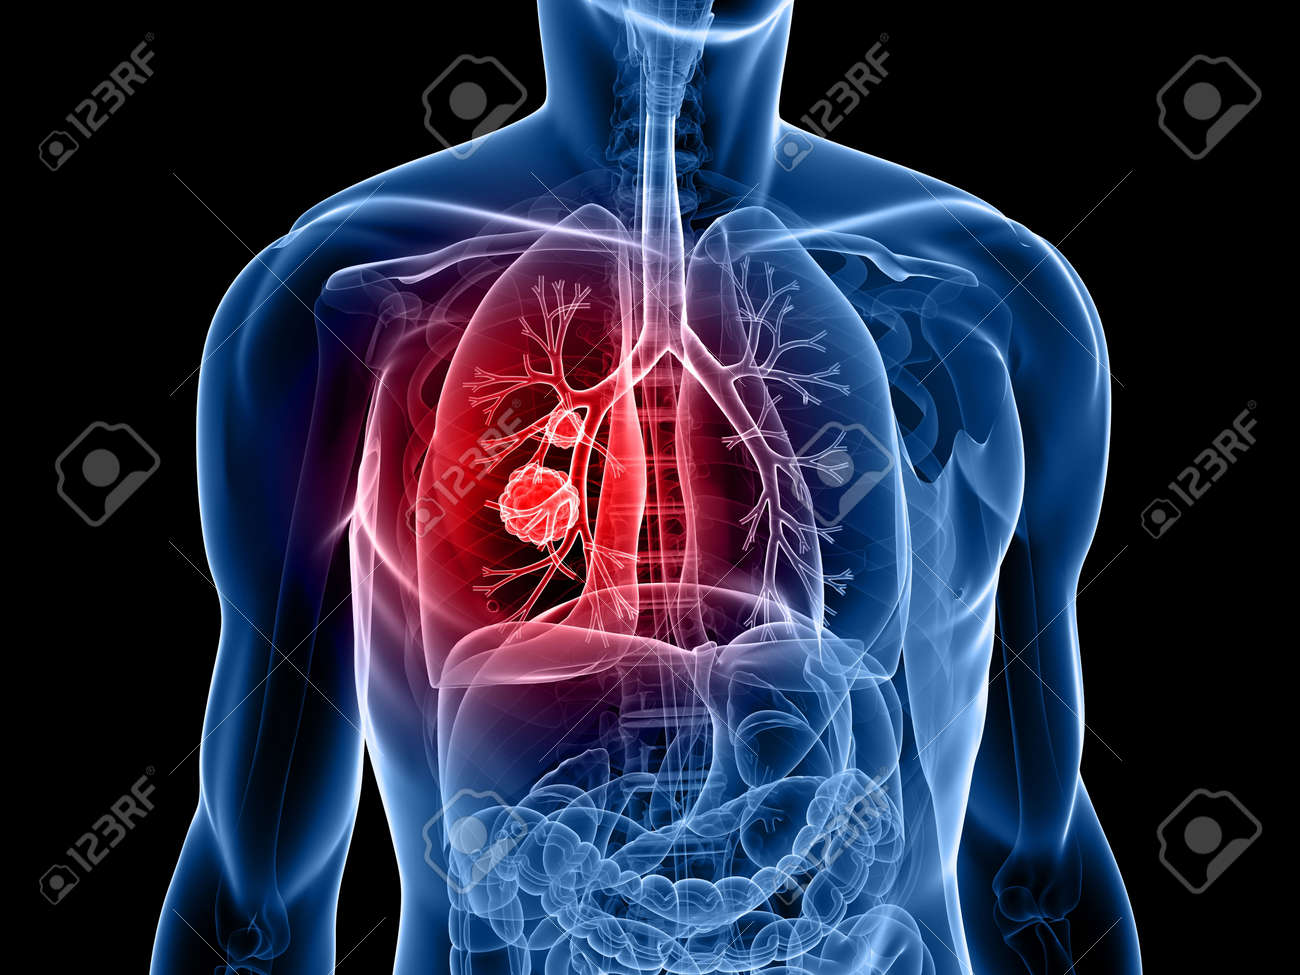 Human Body Shape With Lung Cancer Stock Photo, Picture And Royalty ...